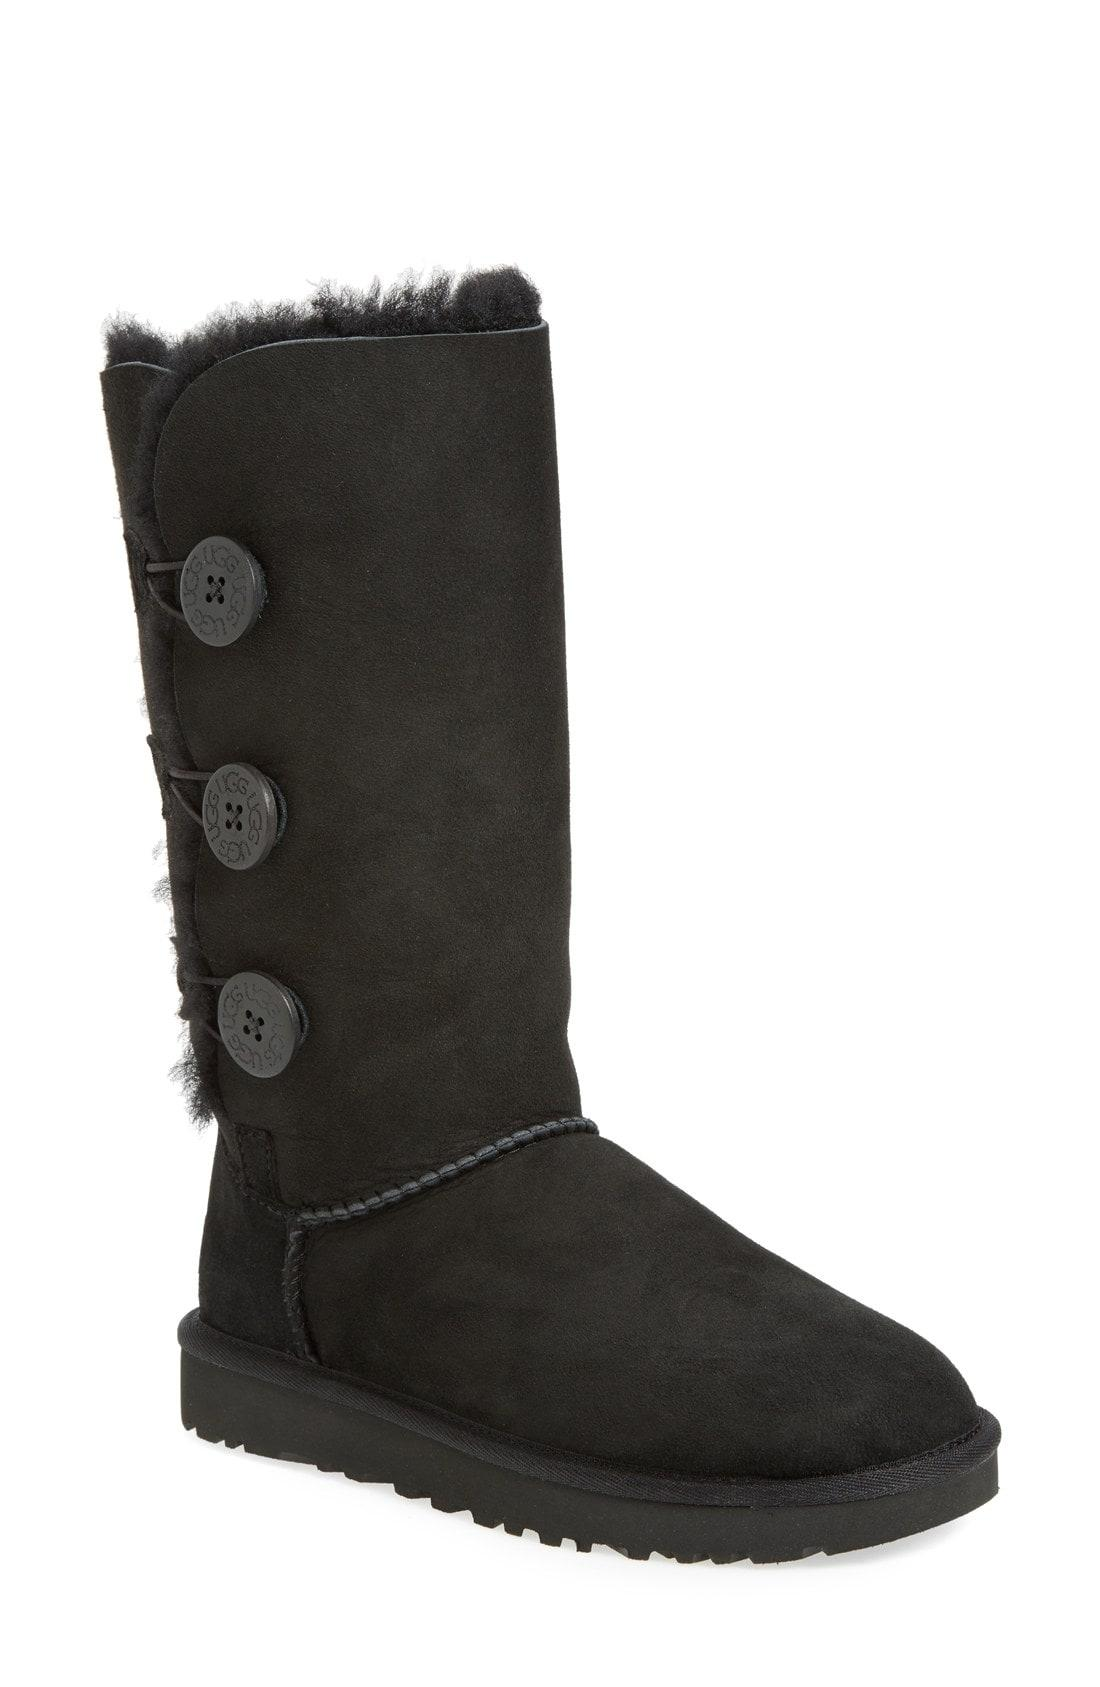 ac54a26a9c7 Women's Bailey Button Triplet Sheepskin Mid Calf Boots in Black Suede